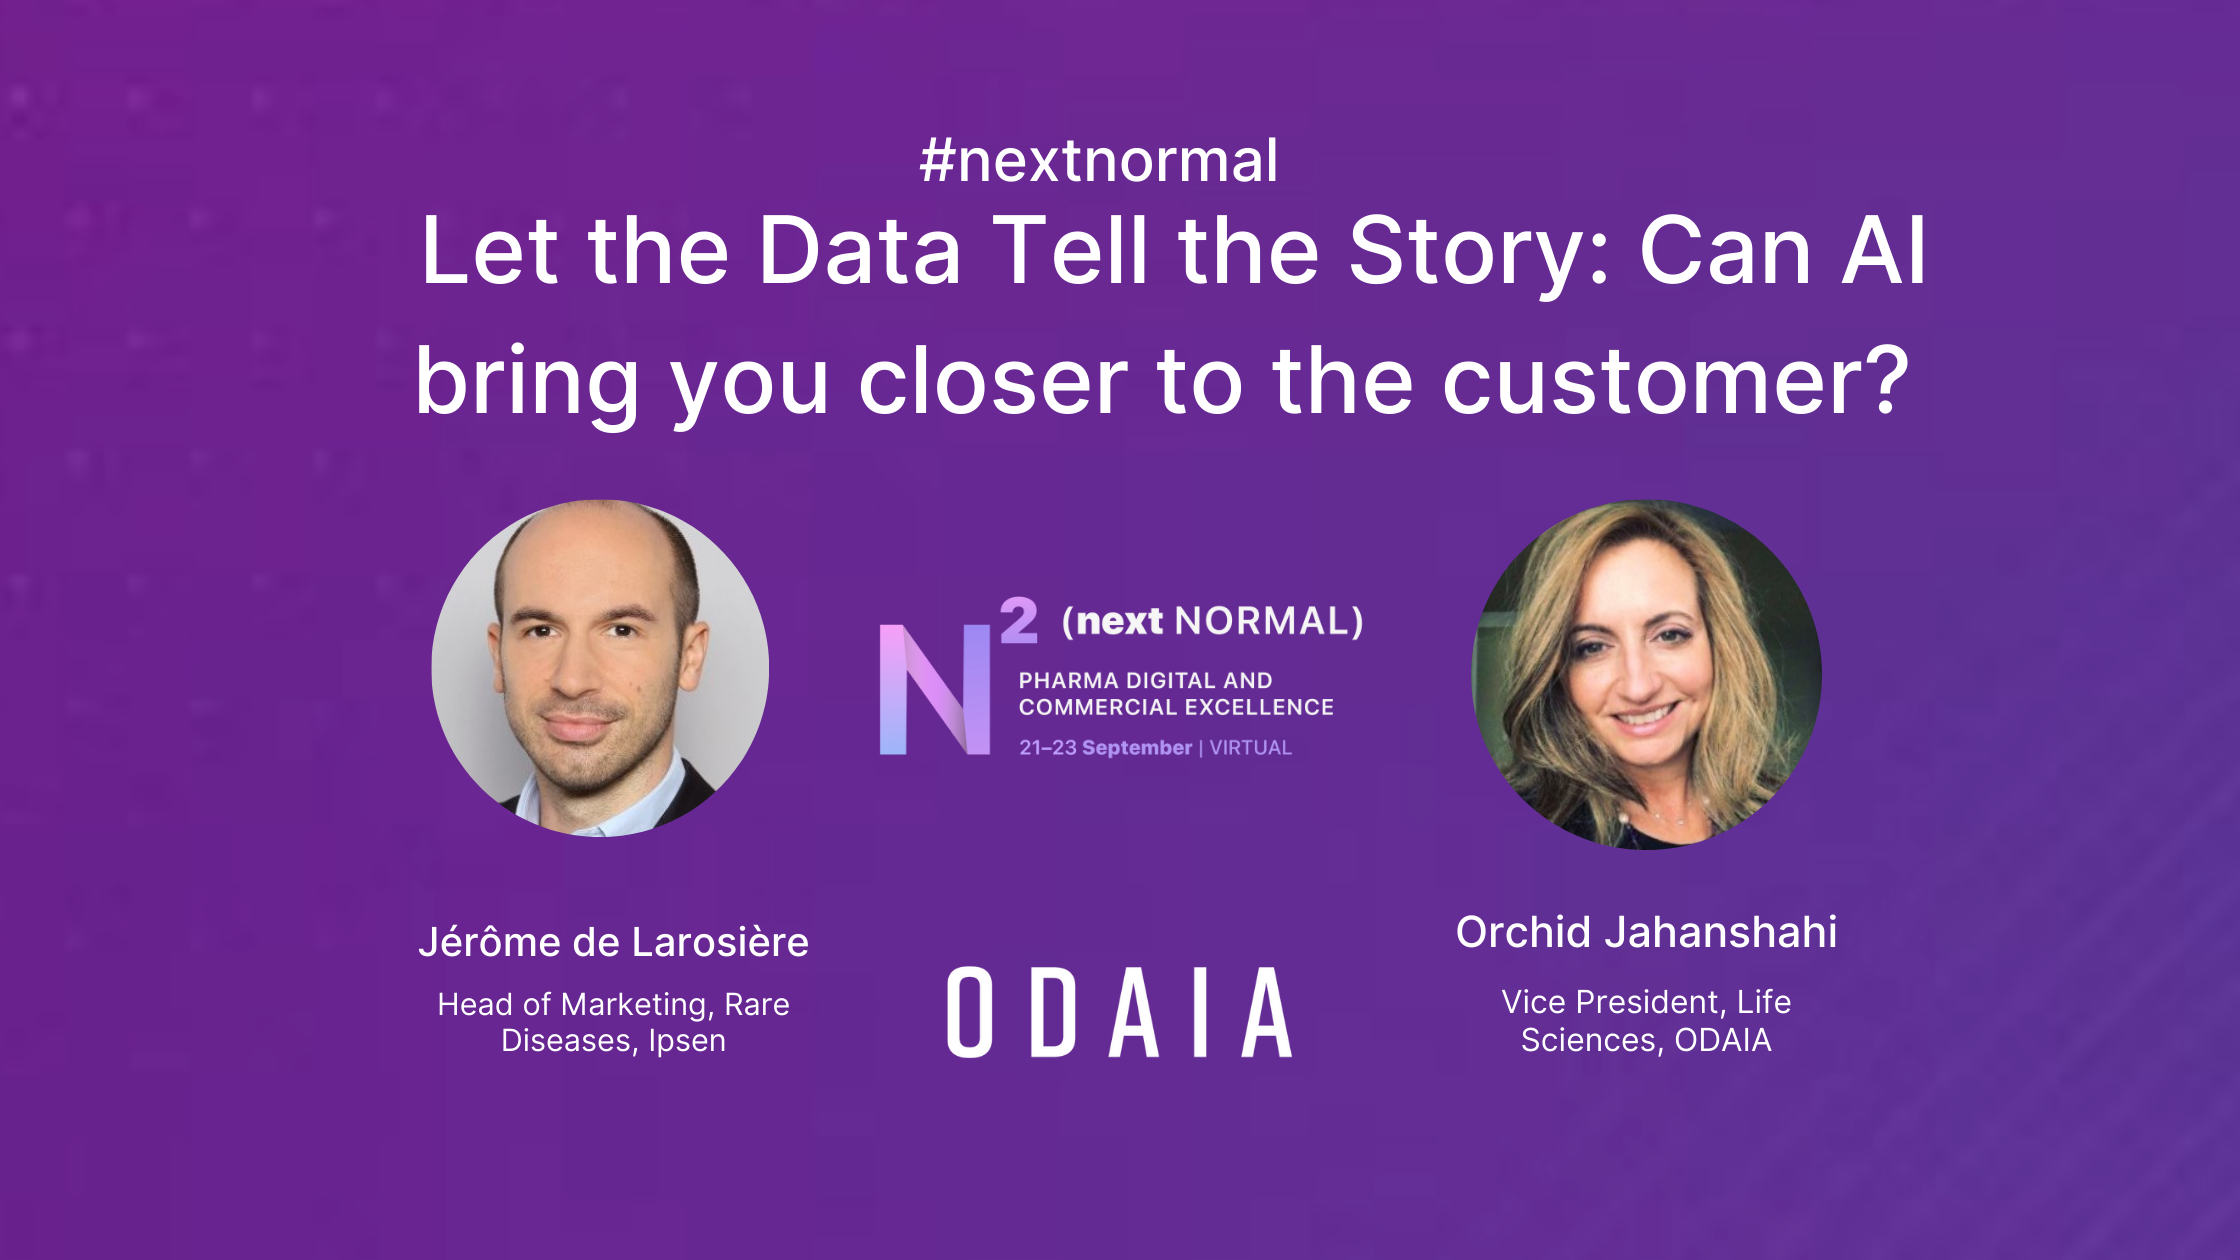 Let Data Tell the Story